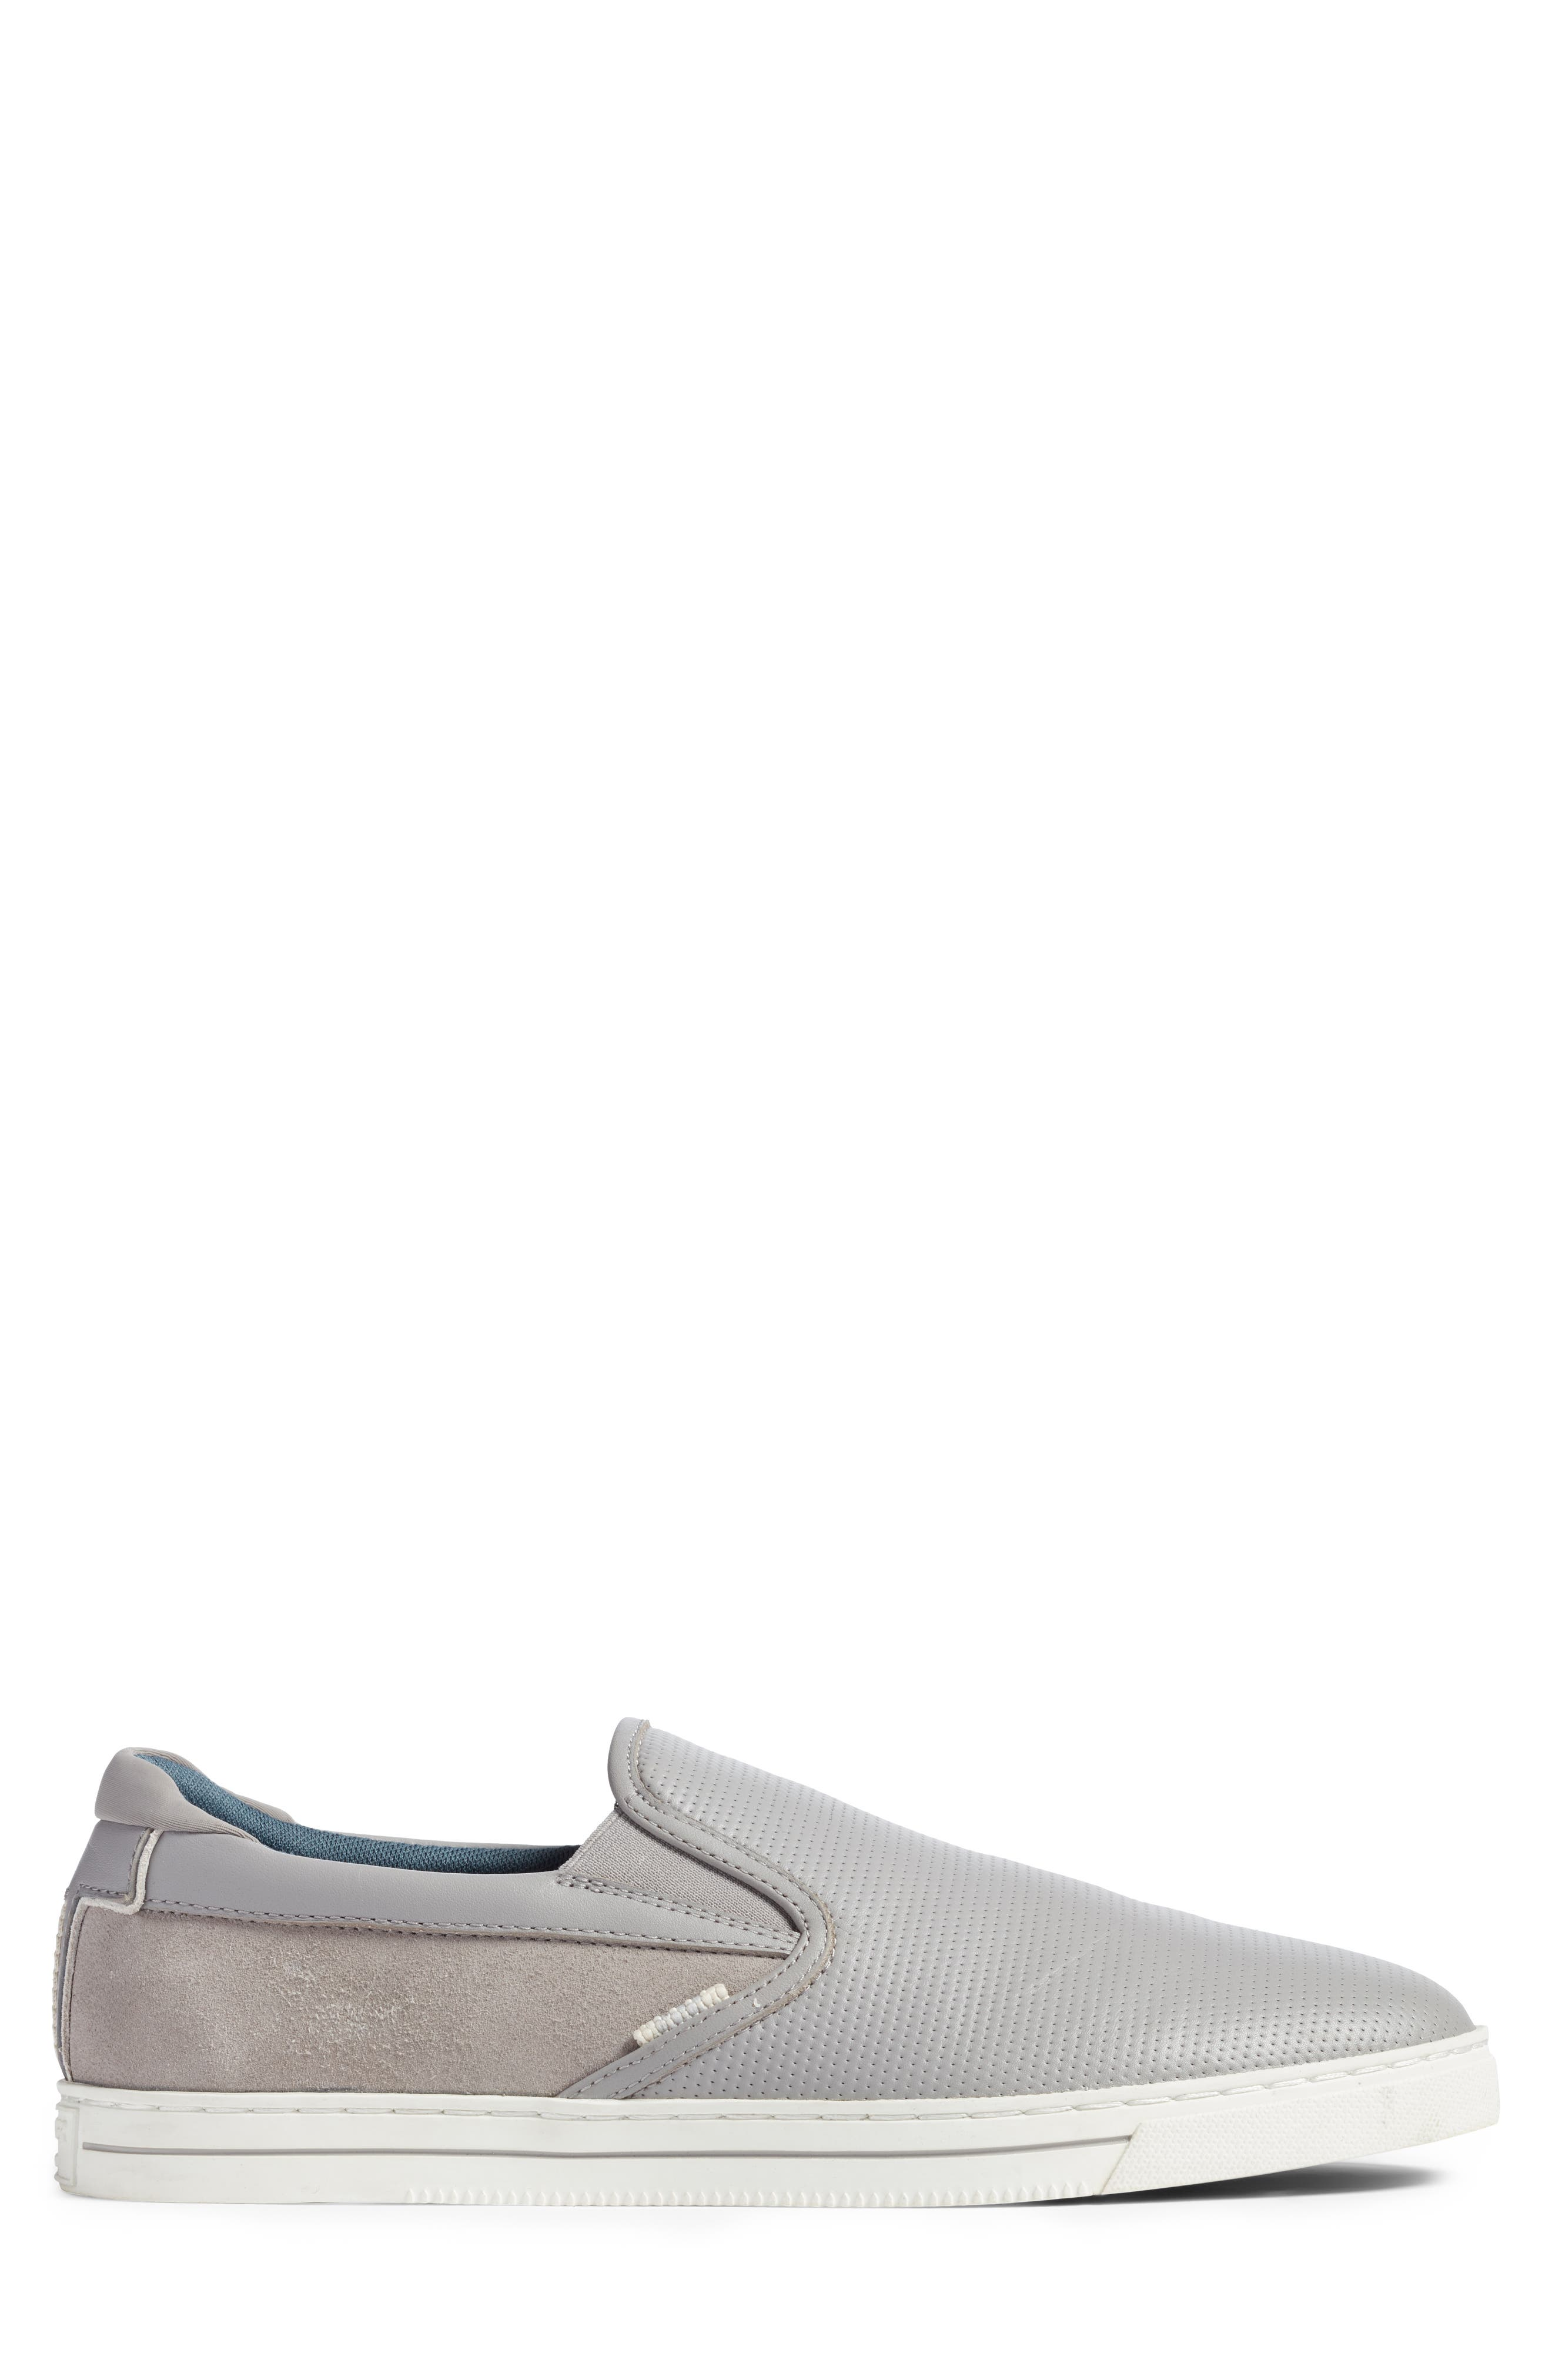 Patroy Perforated Slip-On Sneaker,                             Alternate thumbnail 3, color,                             LIGHT GREY LEATHER